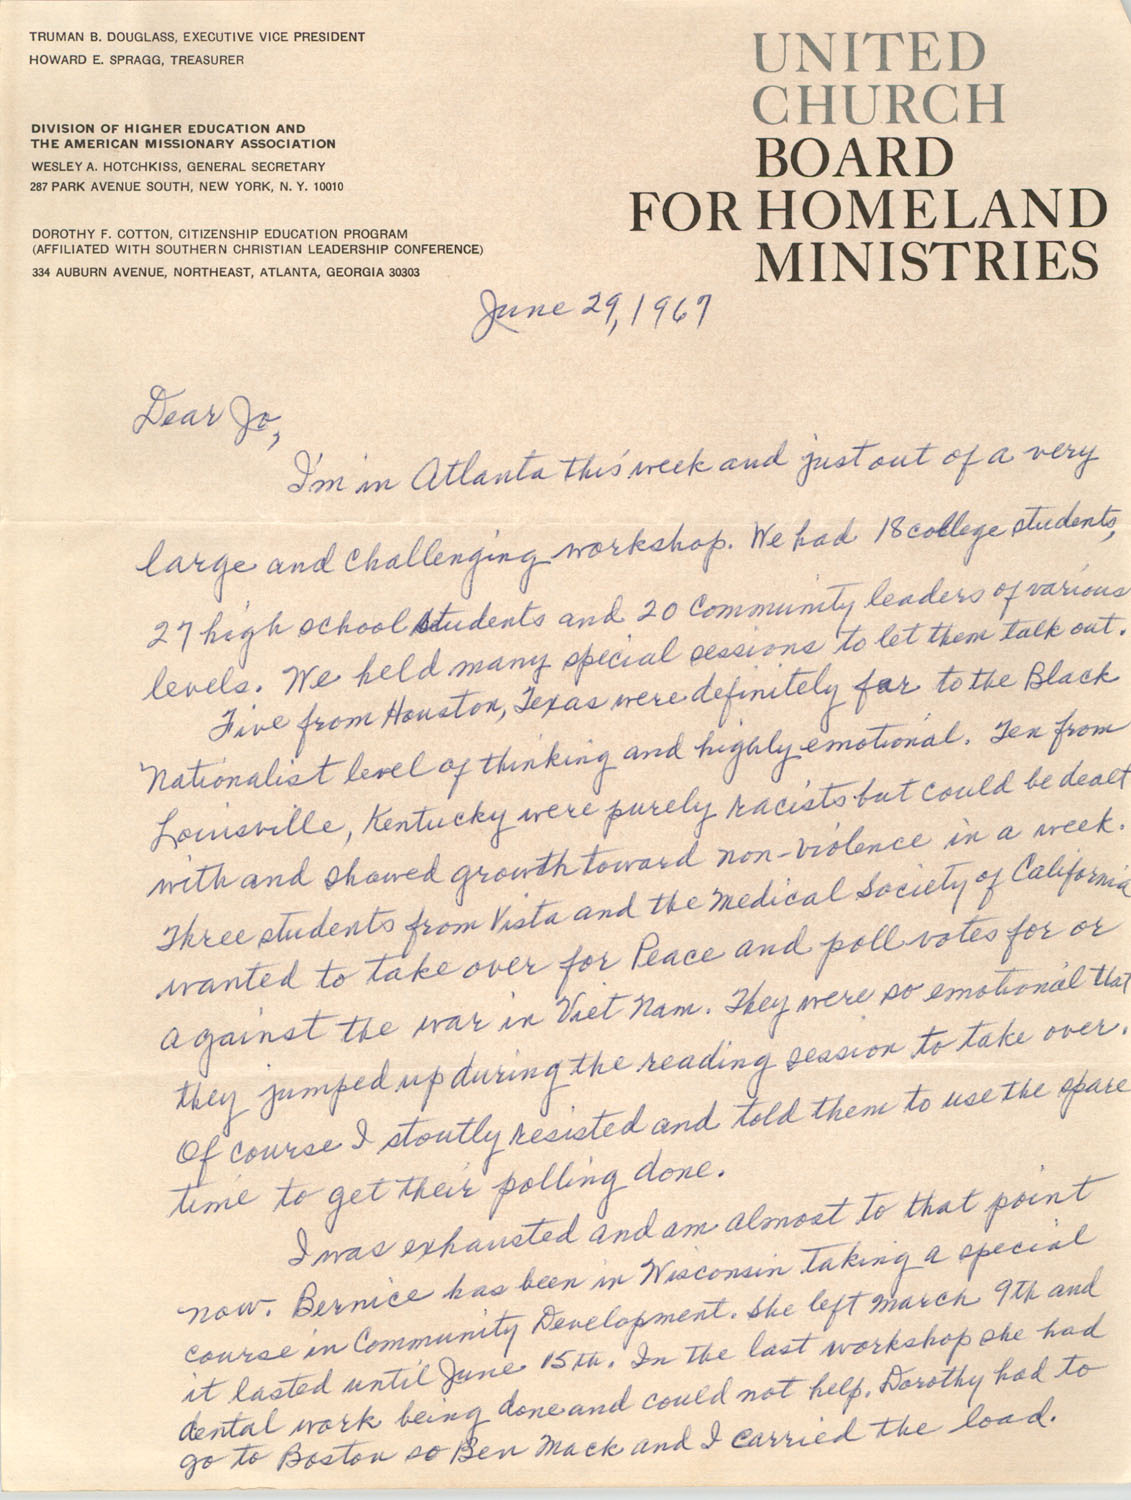 Letter from Septima P. Clark to Josephine Rider, June 29, 1967